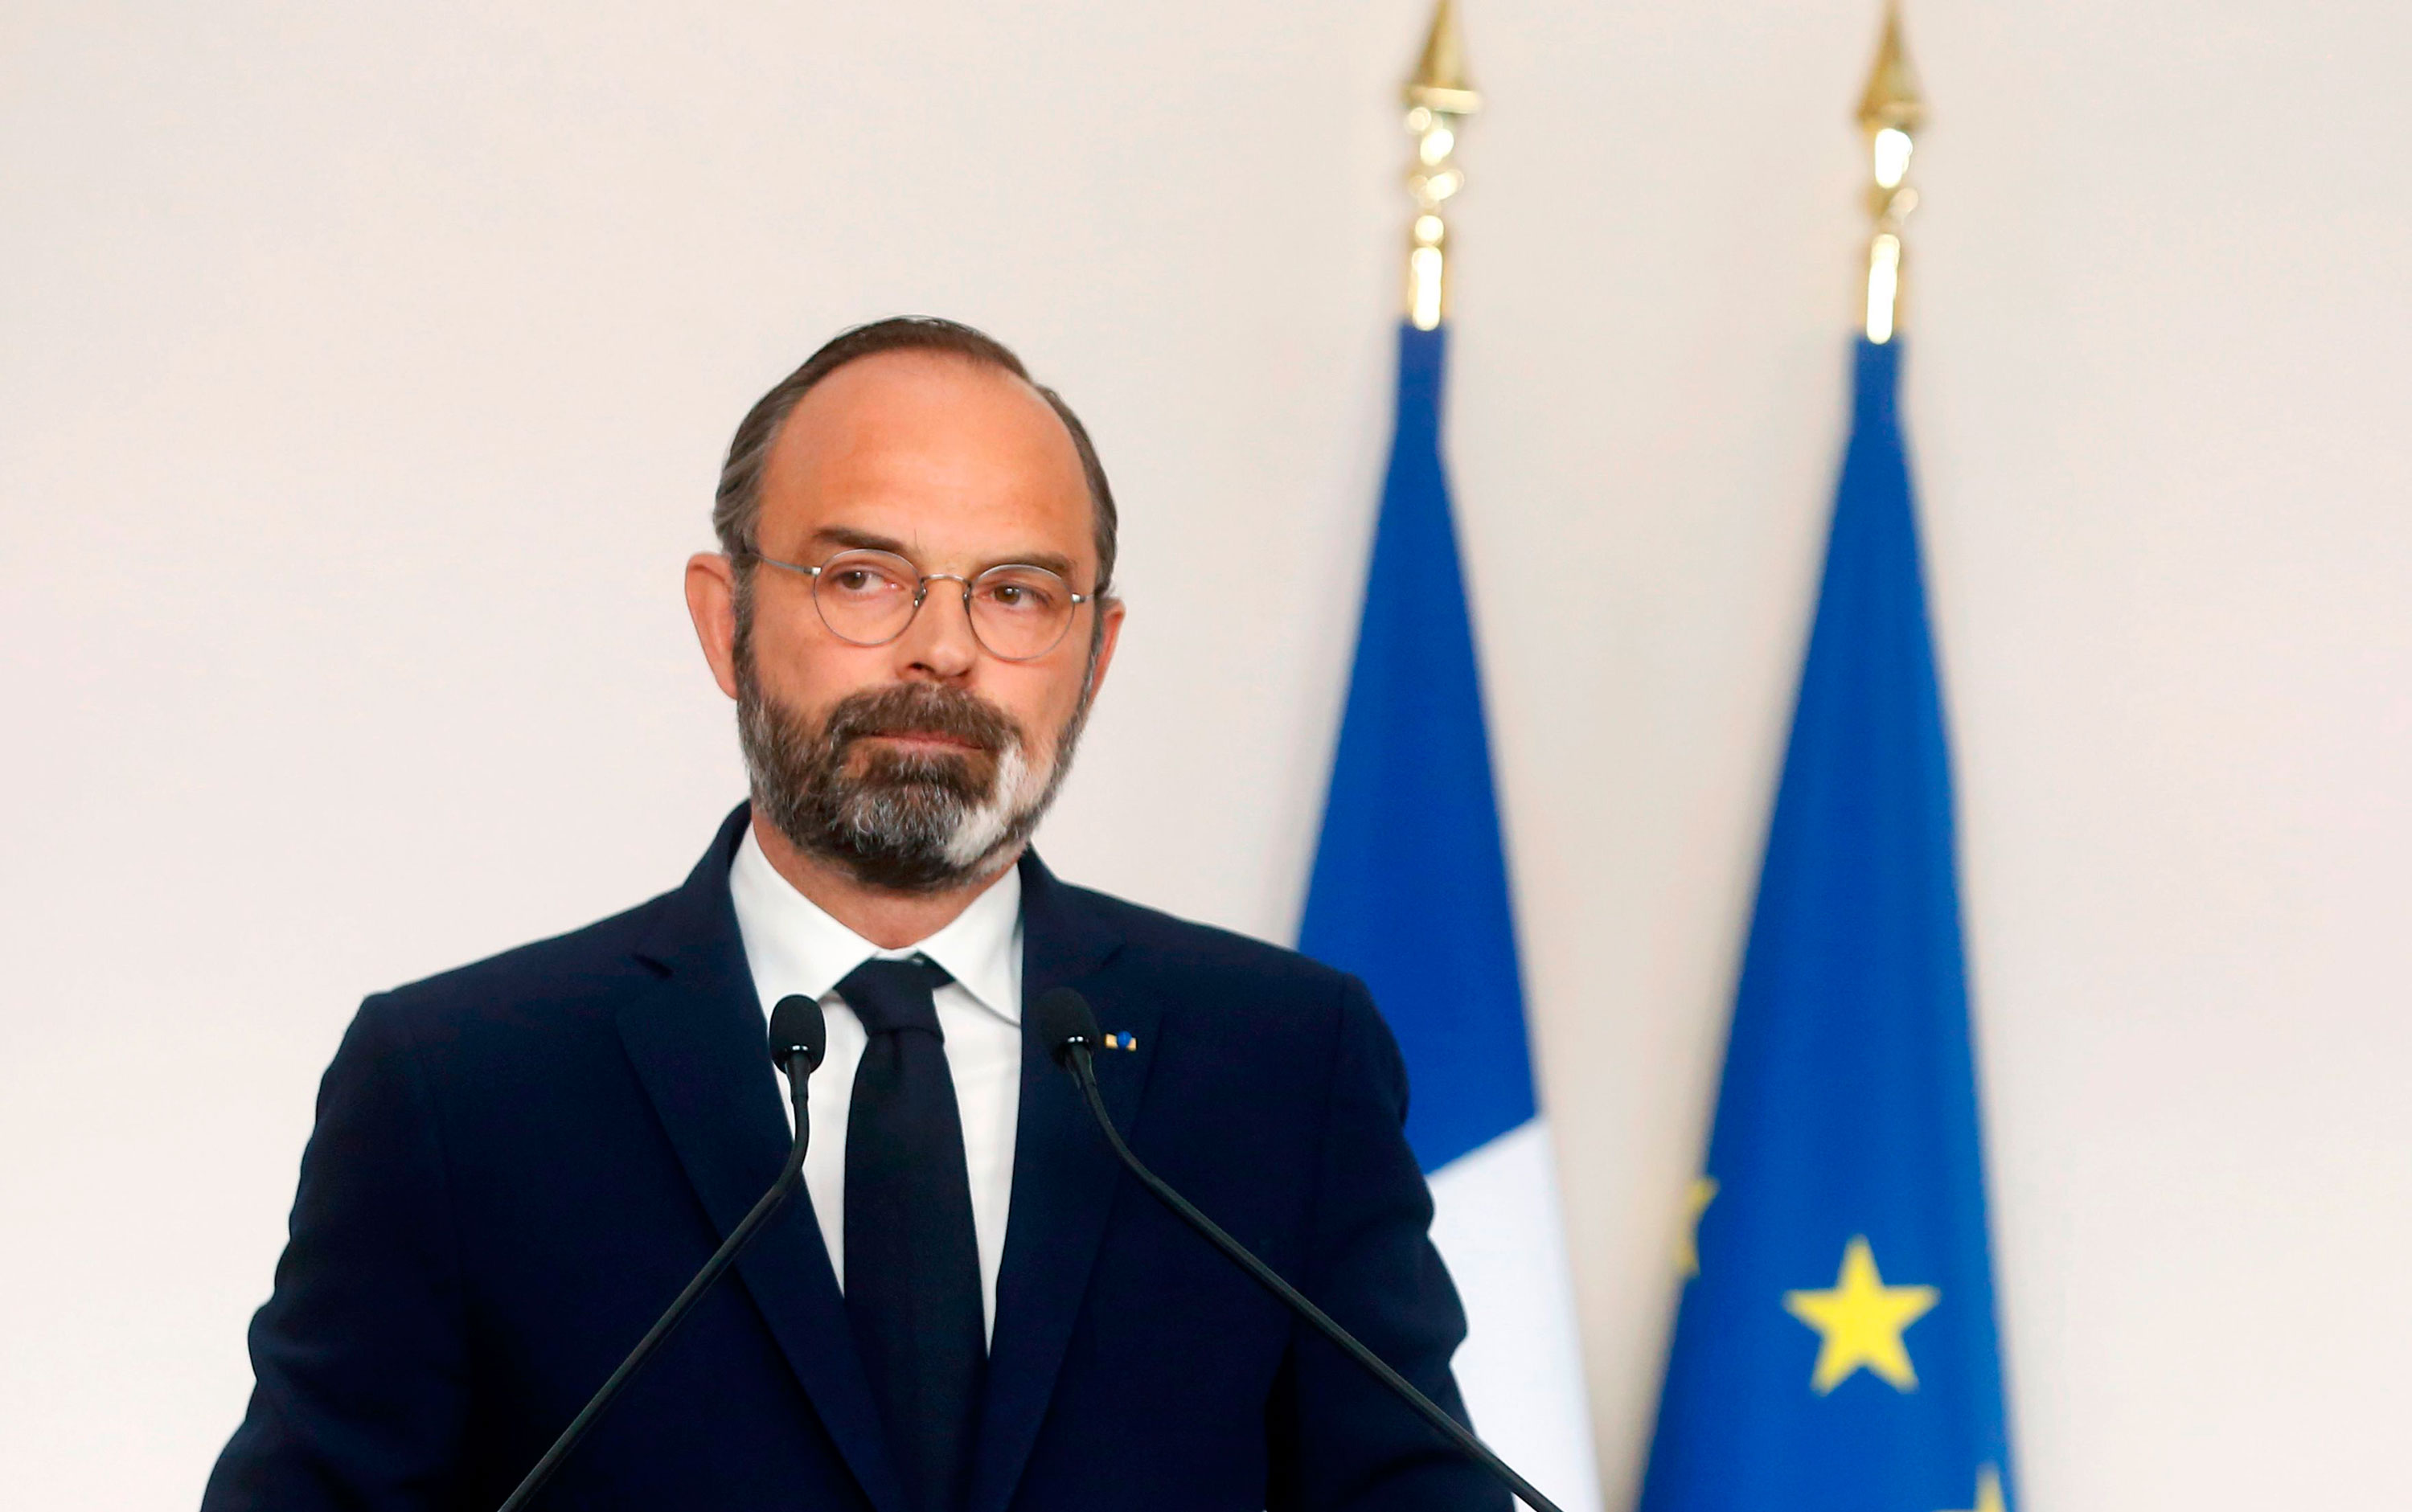 French Prime Minister Edouard Philippe speaks at a press conference in Paris on April 19.